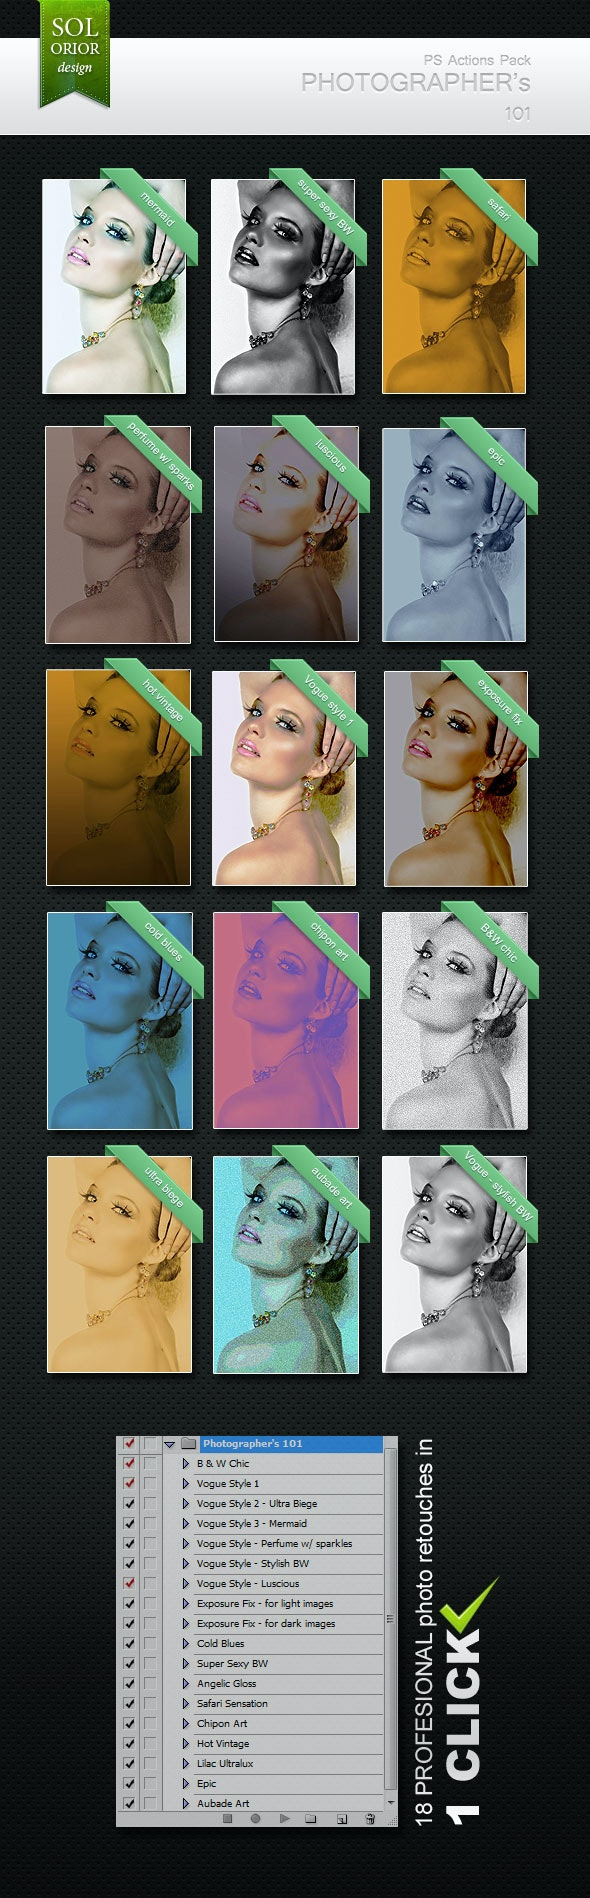 Photographer's 101 - Photoshop Actions - Photoshop Add-ons